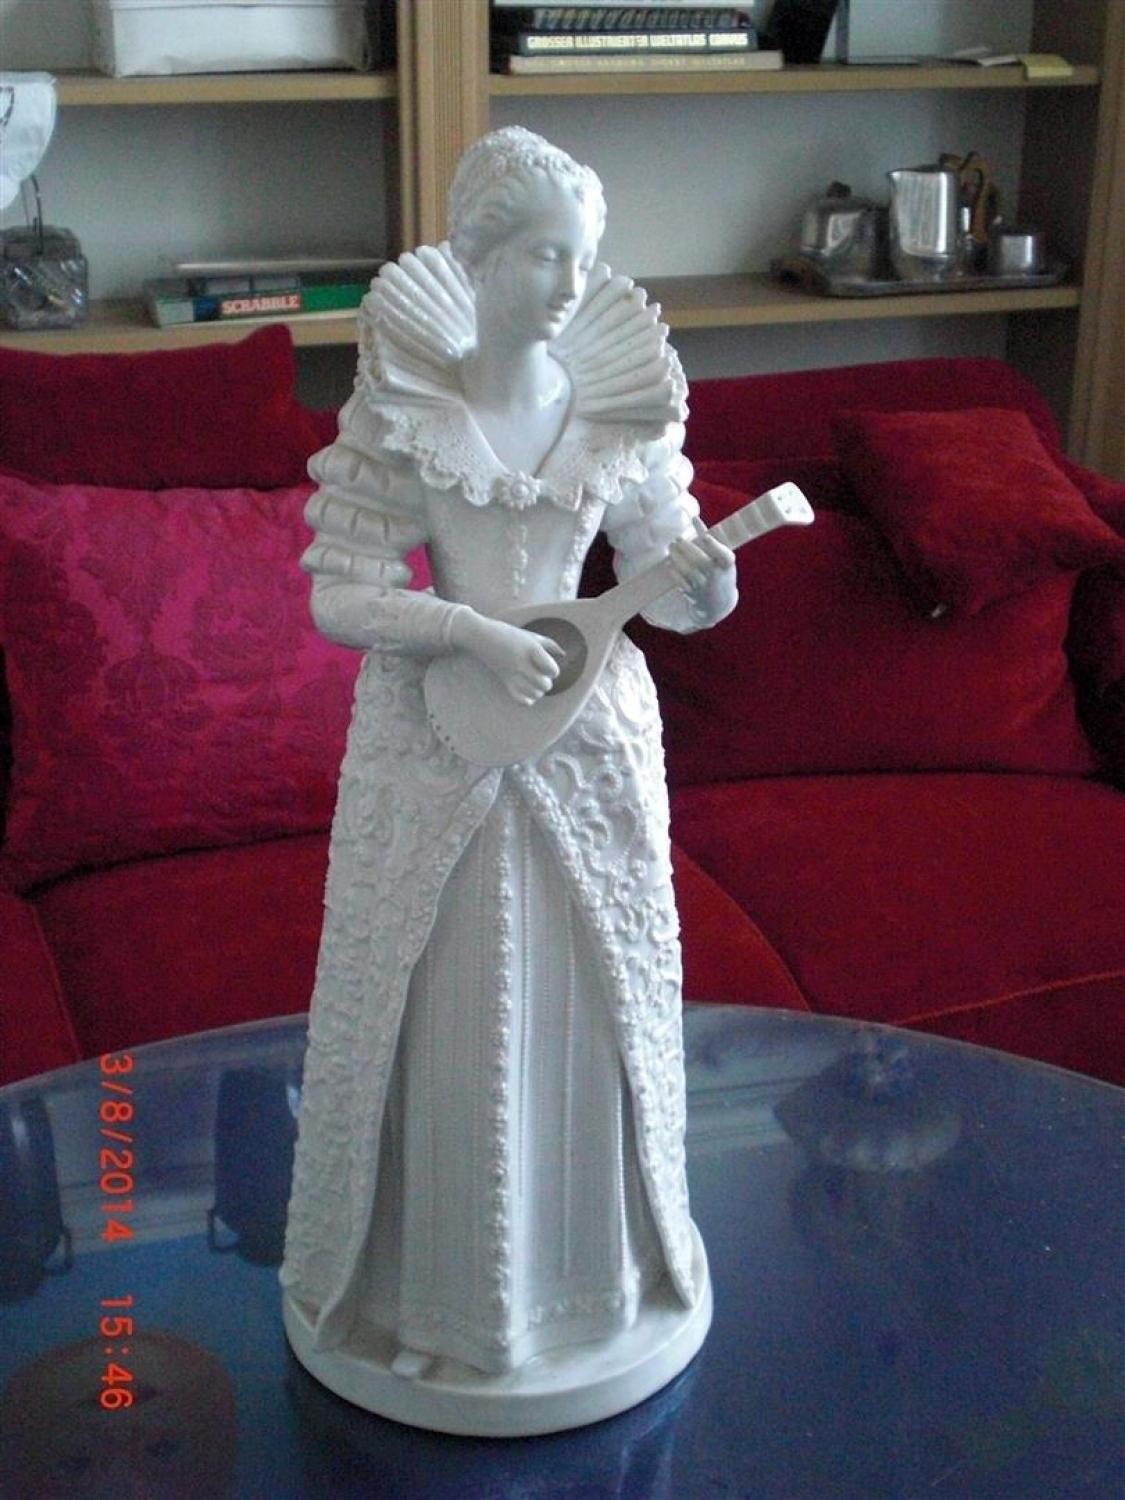 Figurine of a Lady